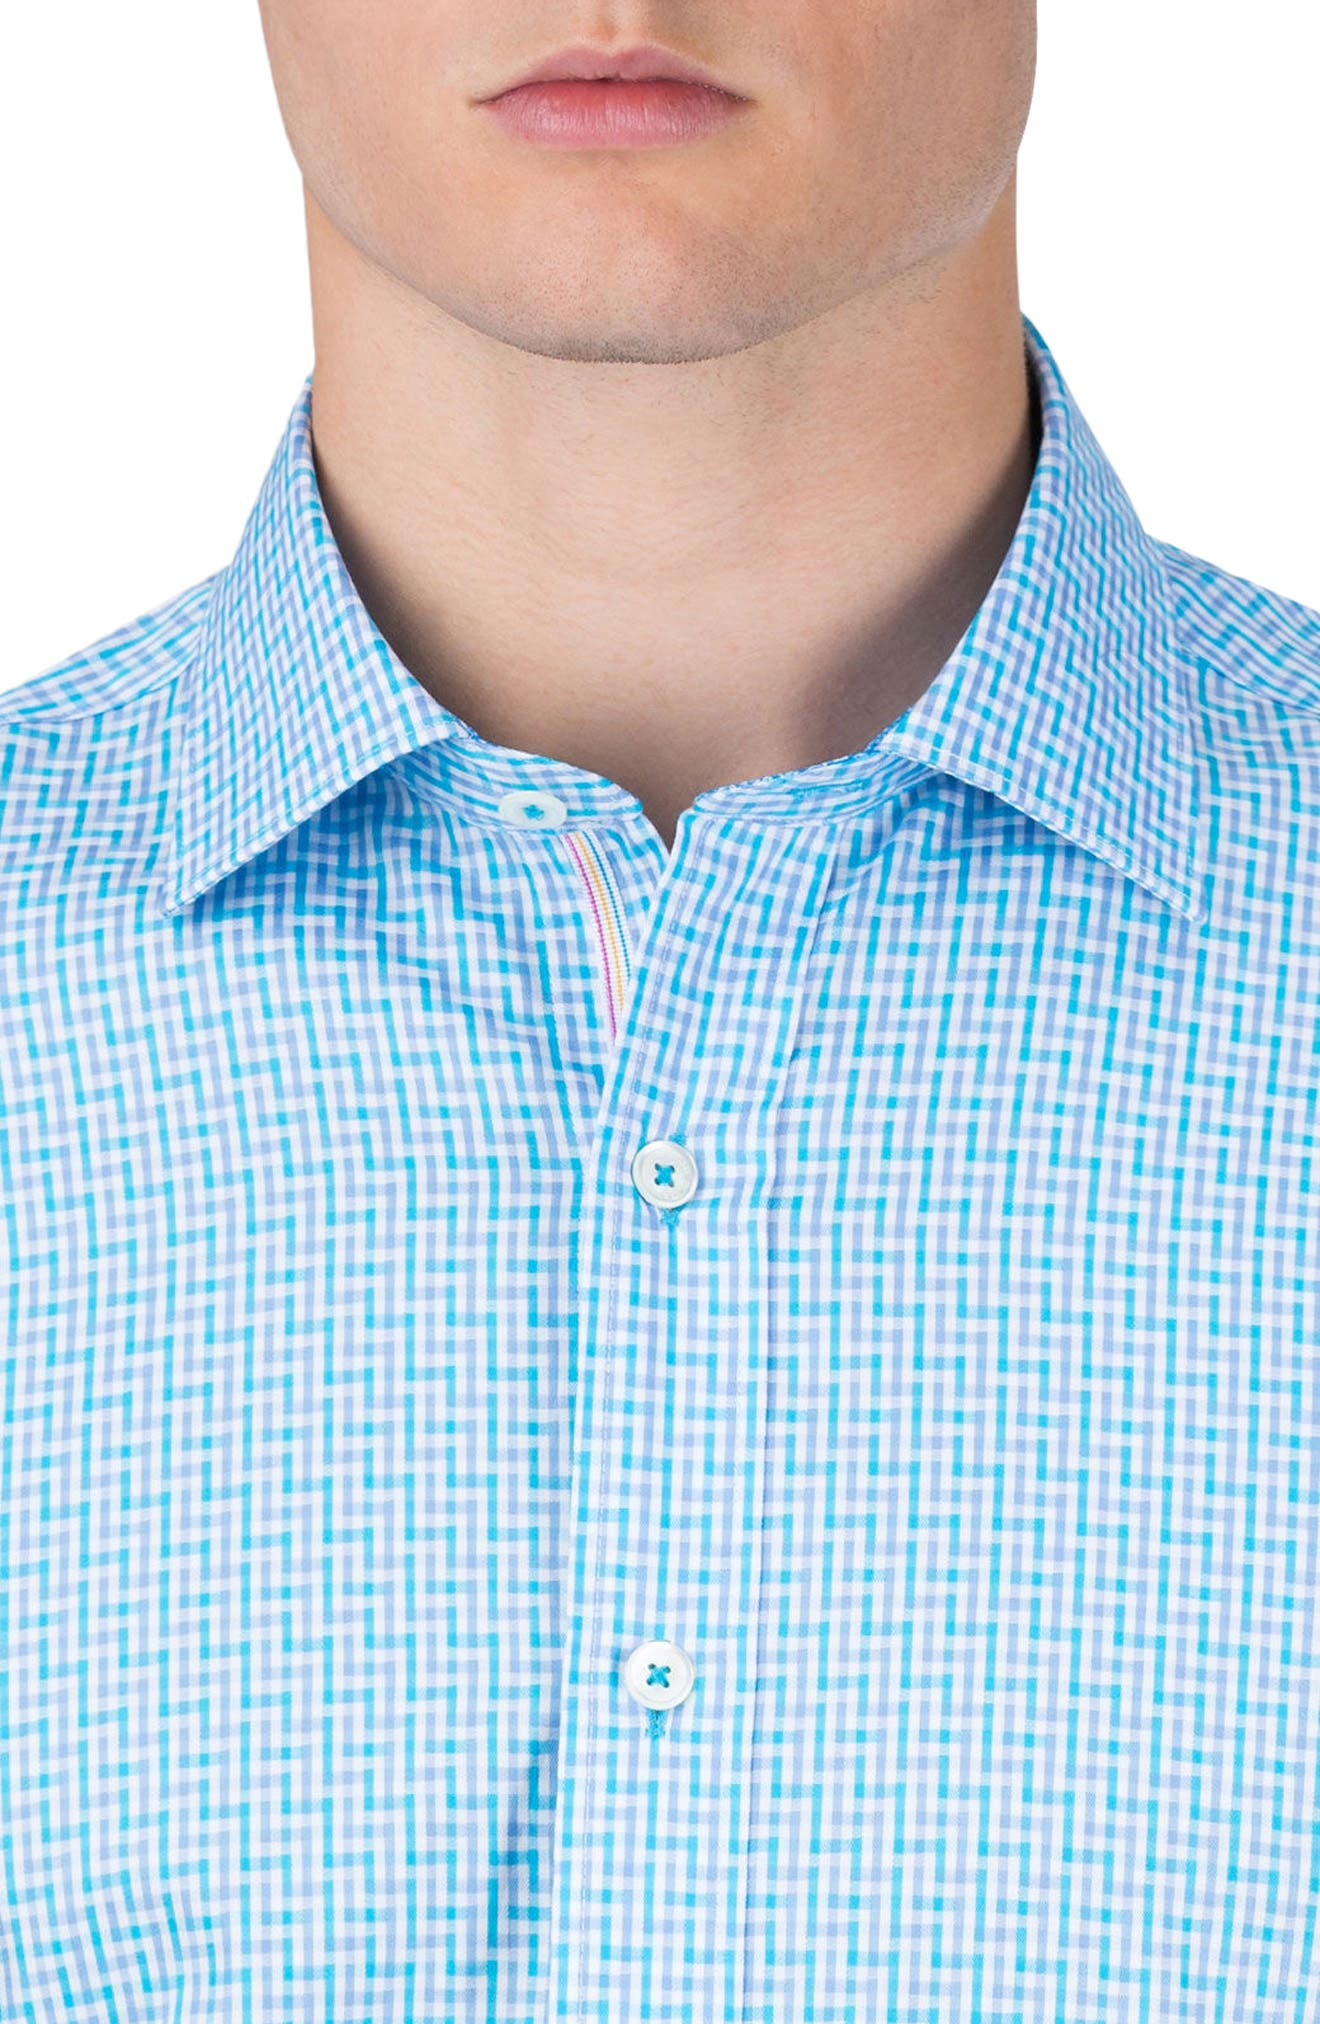 Classic Fit Check Sport Shirt,                             Alternate thumbnail 3, color,                             Turquoise